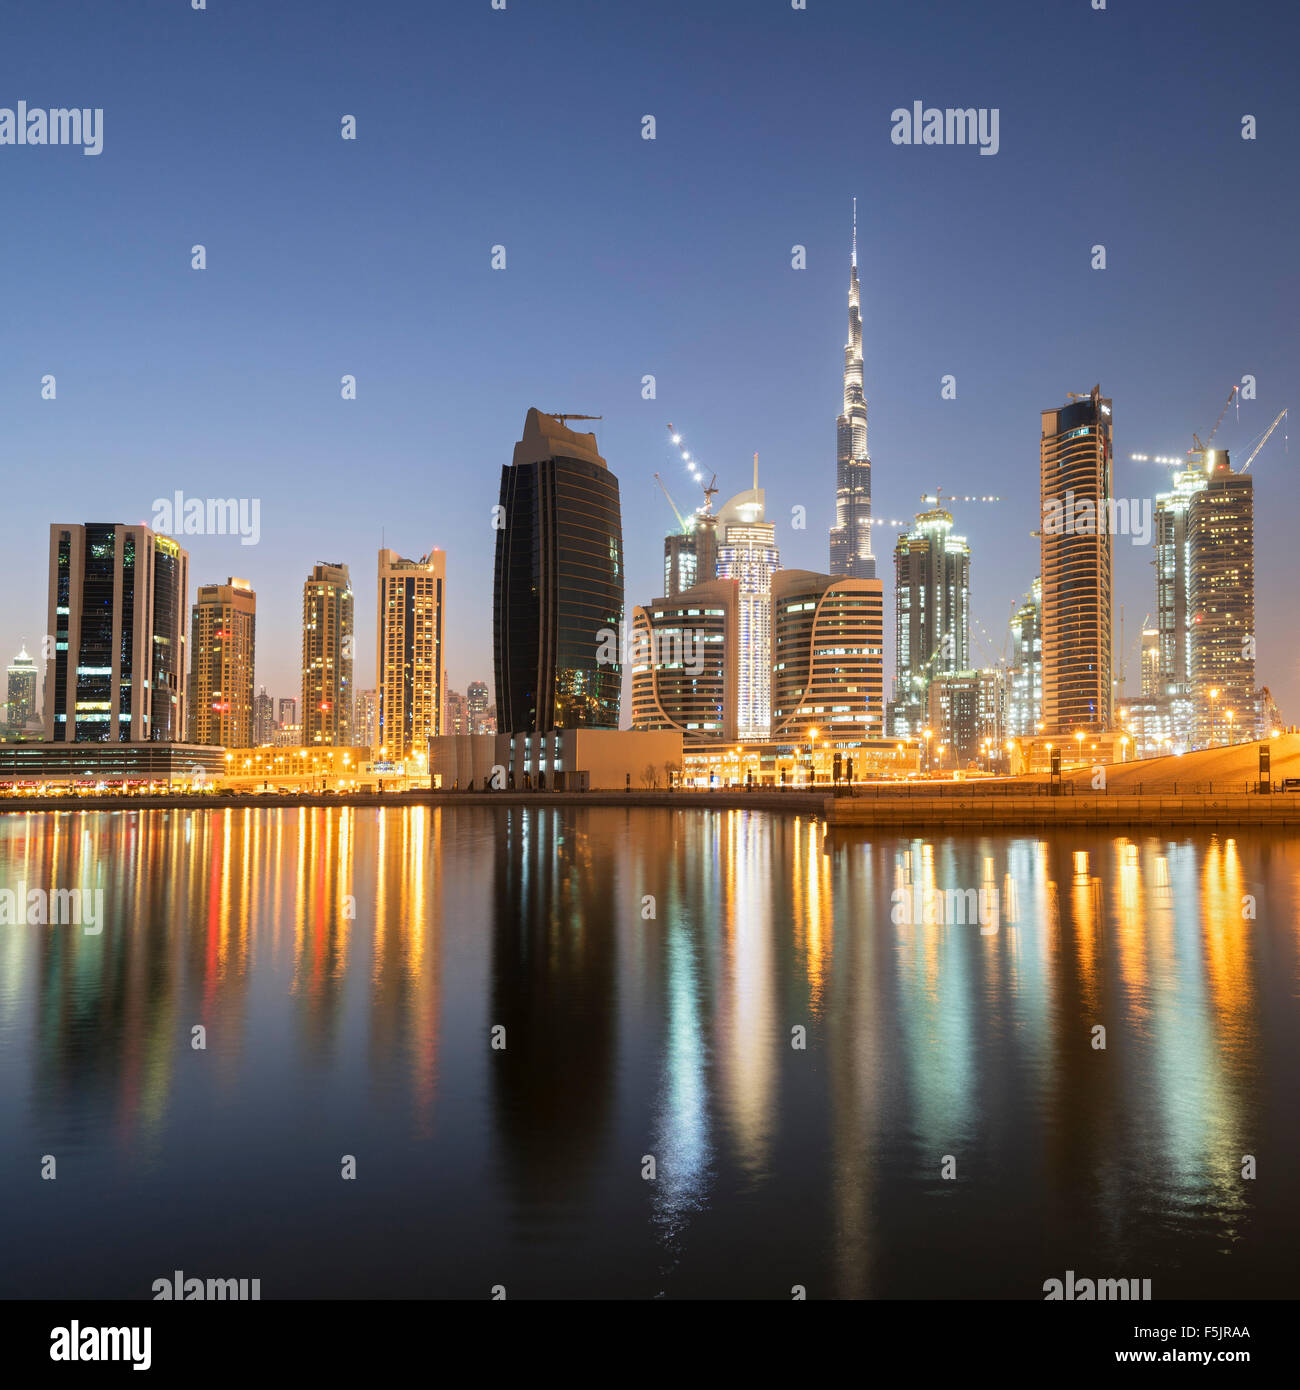 Skyline of towers reflected in the Creek at dusk in Business Bay  in Dubai United Arab Emirates - Stock Image